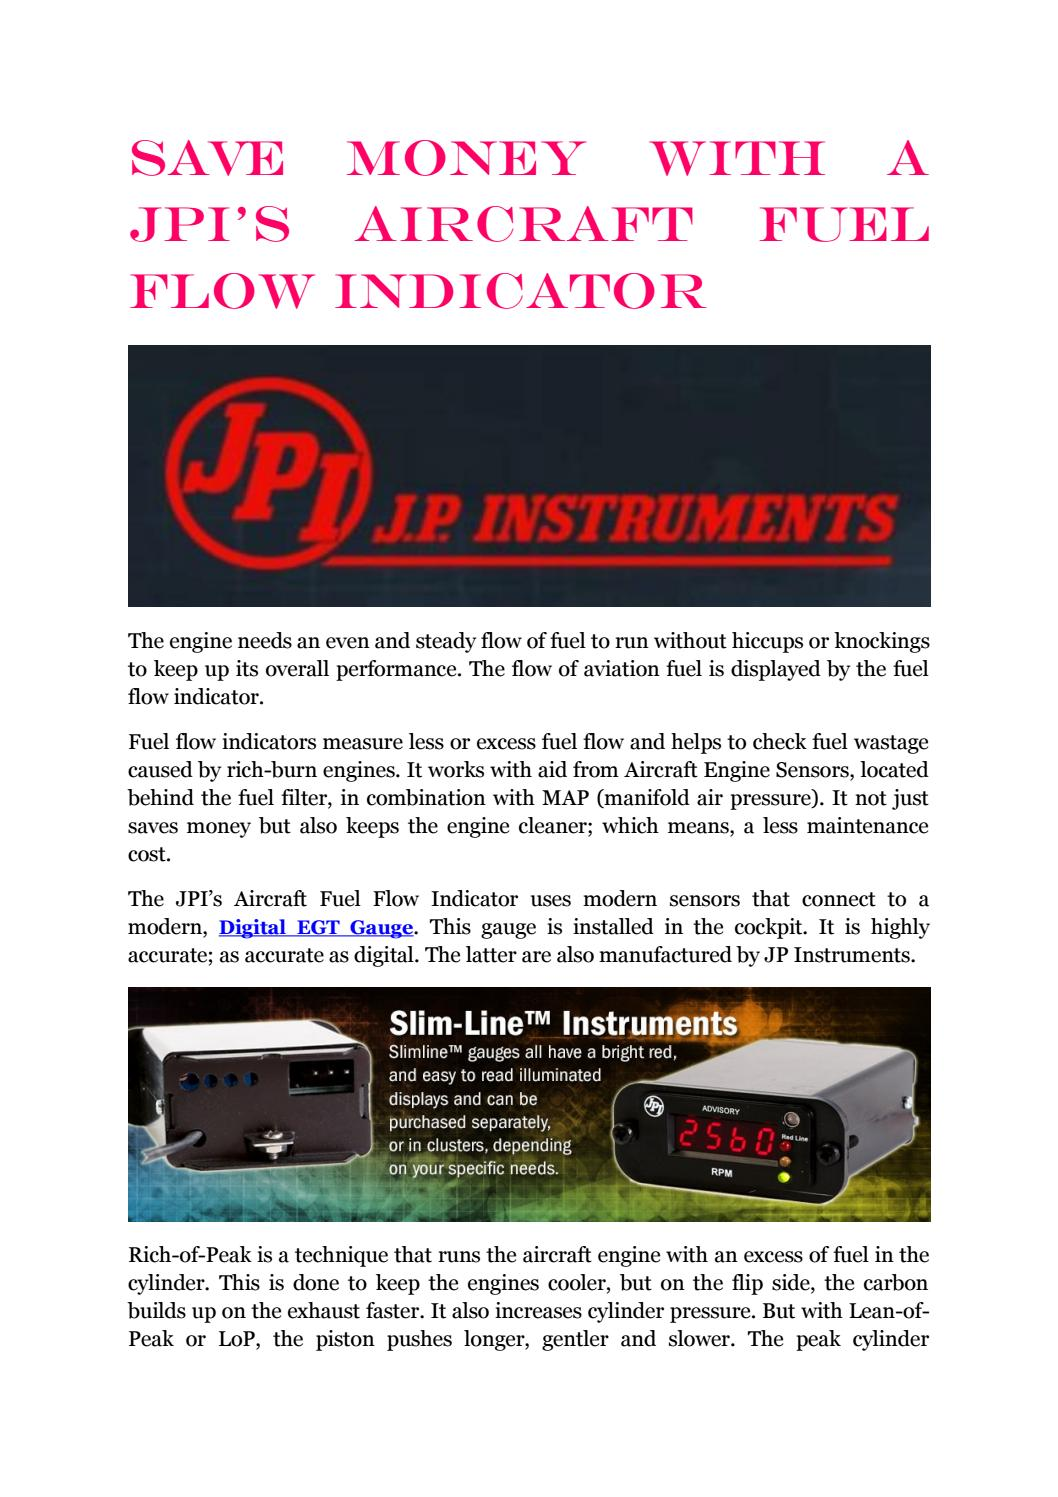 Save Money With A Jpis Aircraft Fuel Flow Indicator By J P Jet Filters Instruments Issuu